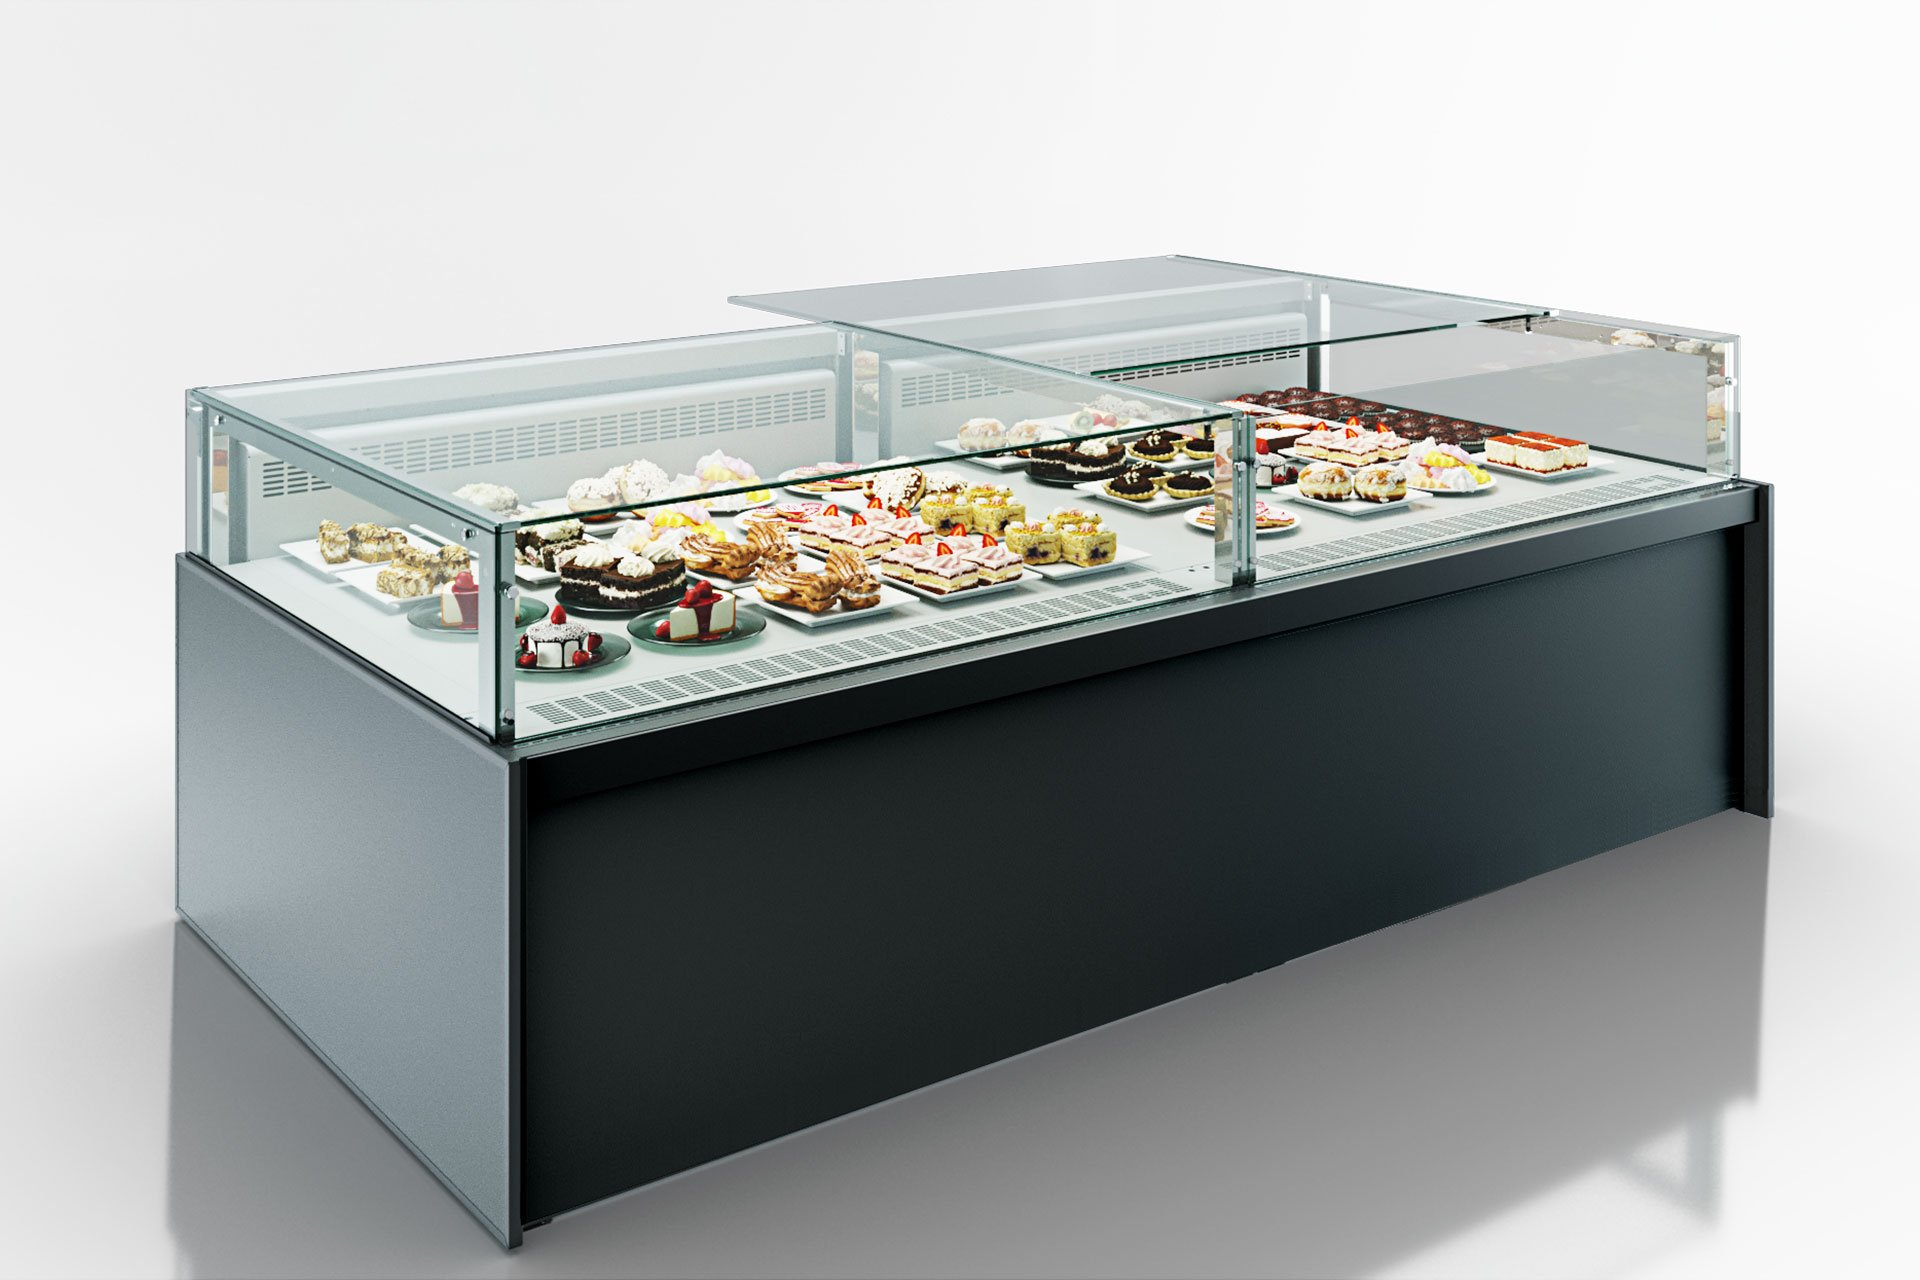 Витрины Missouri MC 120 patisserie СН SP 090-DLM/DLA